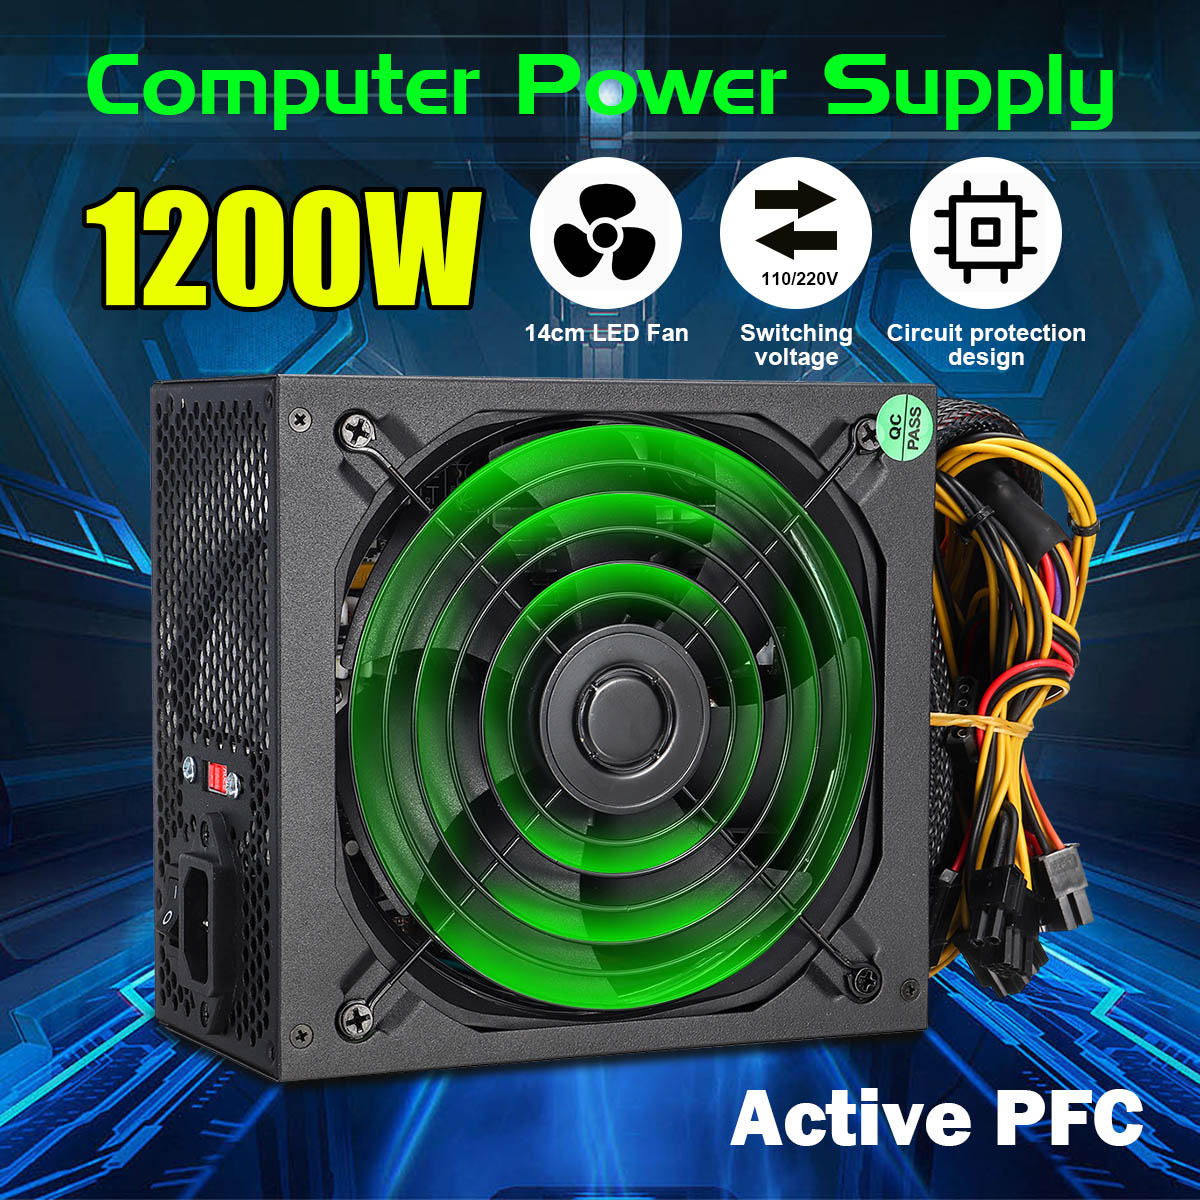 1200W PC Power Supply For Computer Module PC PSU PFC 24Pin SATA 6Pin 4Pin 14cm Quiet LED Fan 110~220V